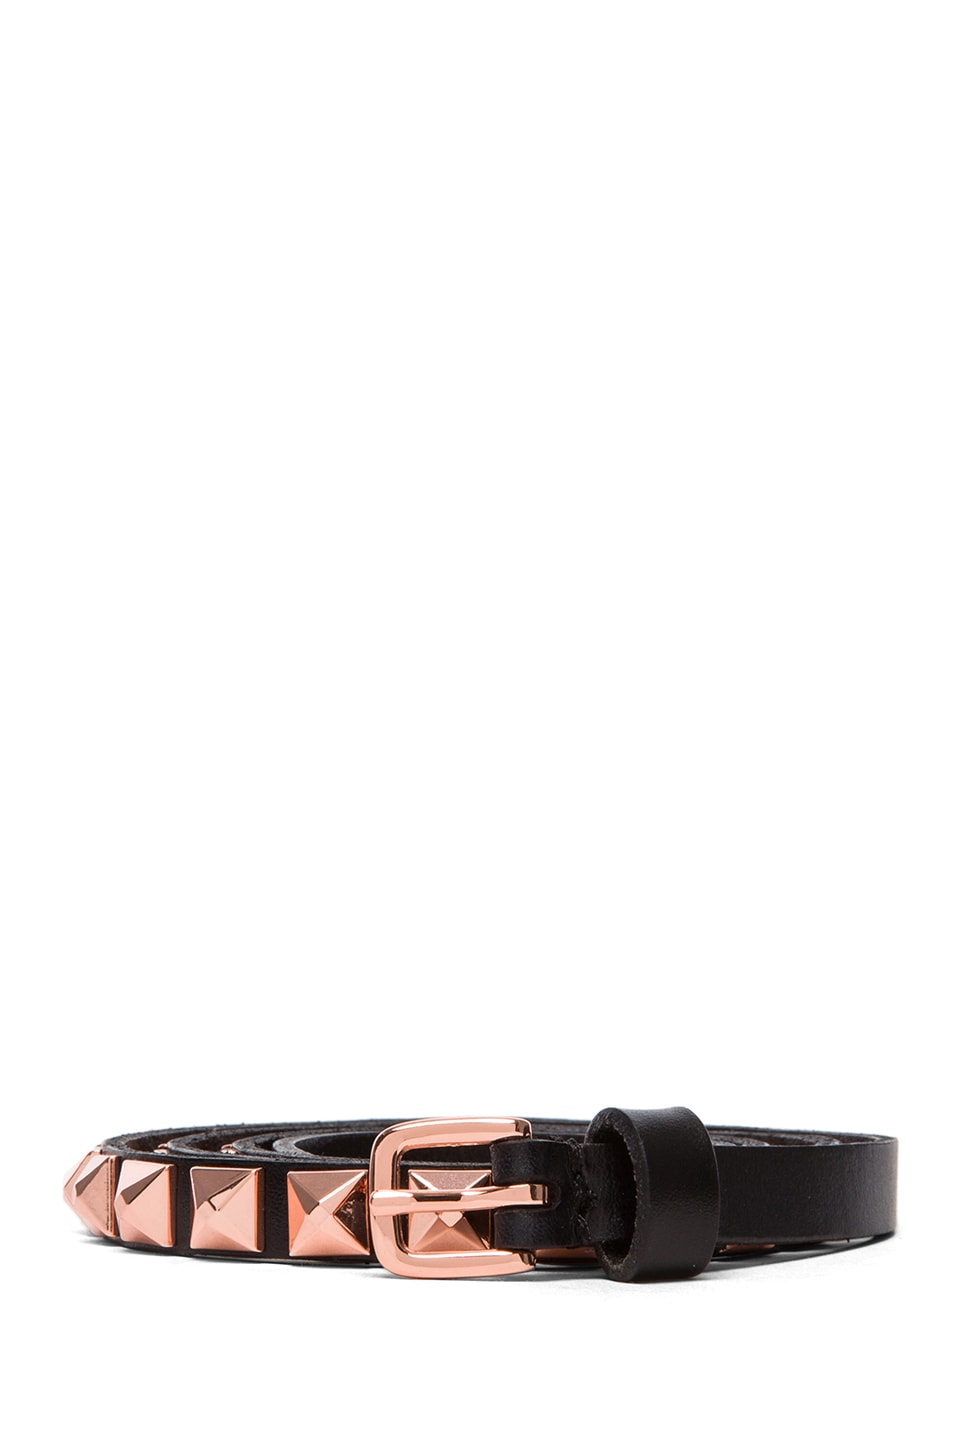 Linea Pelle Skinny Hip Belt with Pyramid Studs in Black & Rose Gold